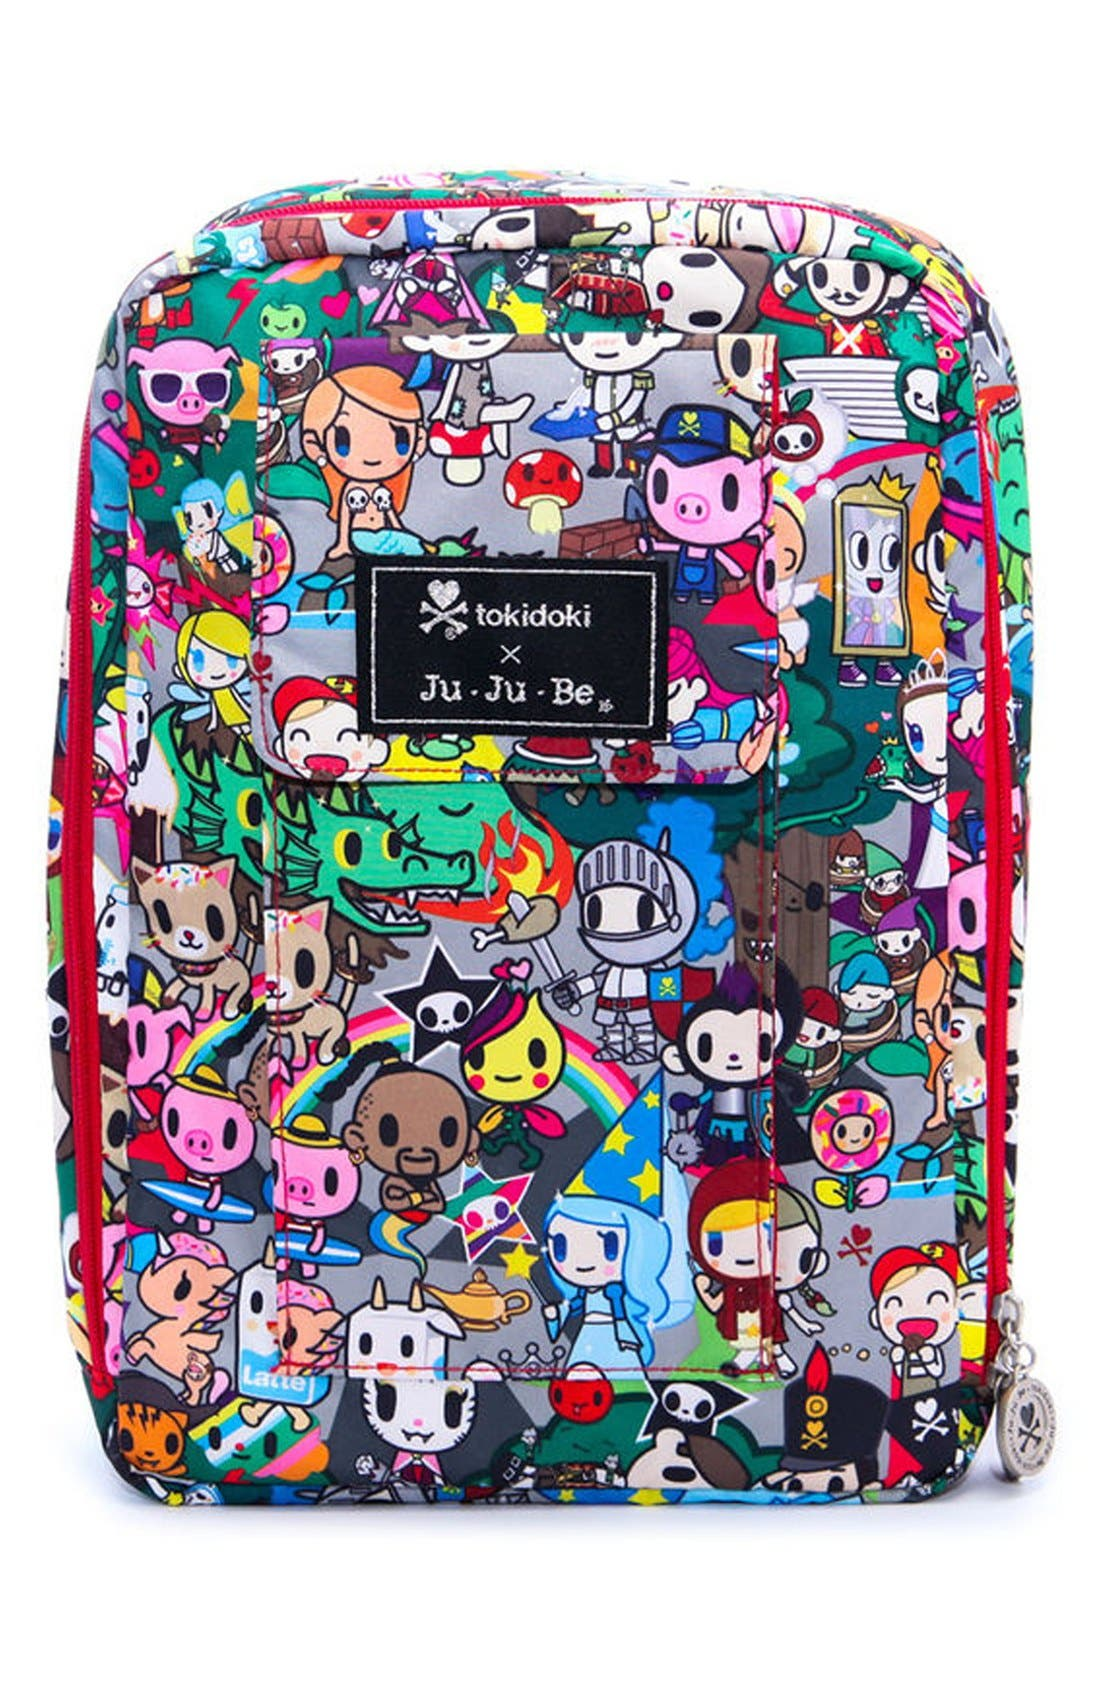 tokidoki x Ju-Ju-Be 'Mini Be' Backpack,                             Main thumbnail 1, color,                             603